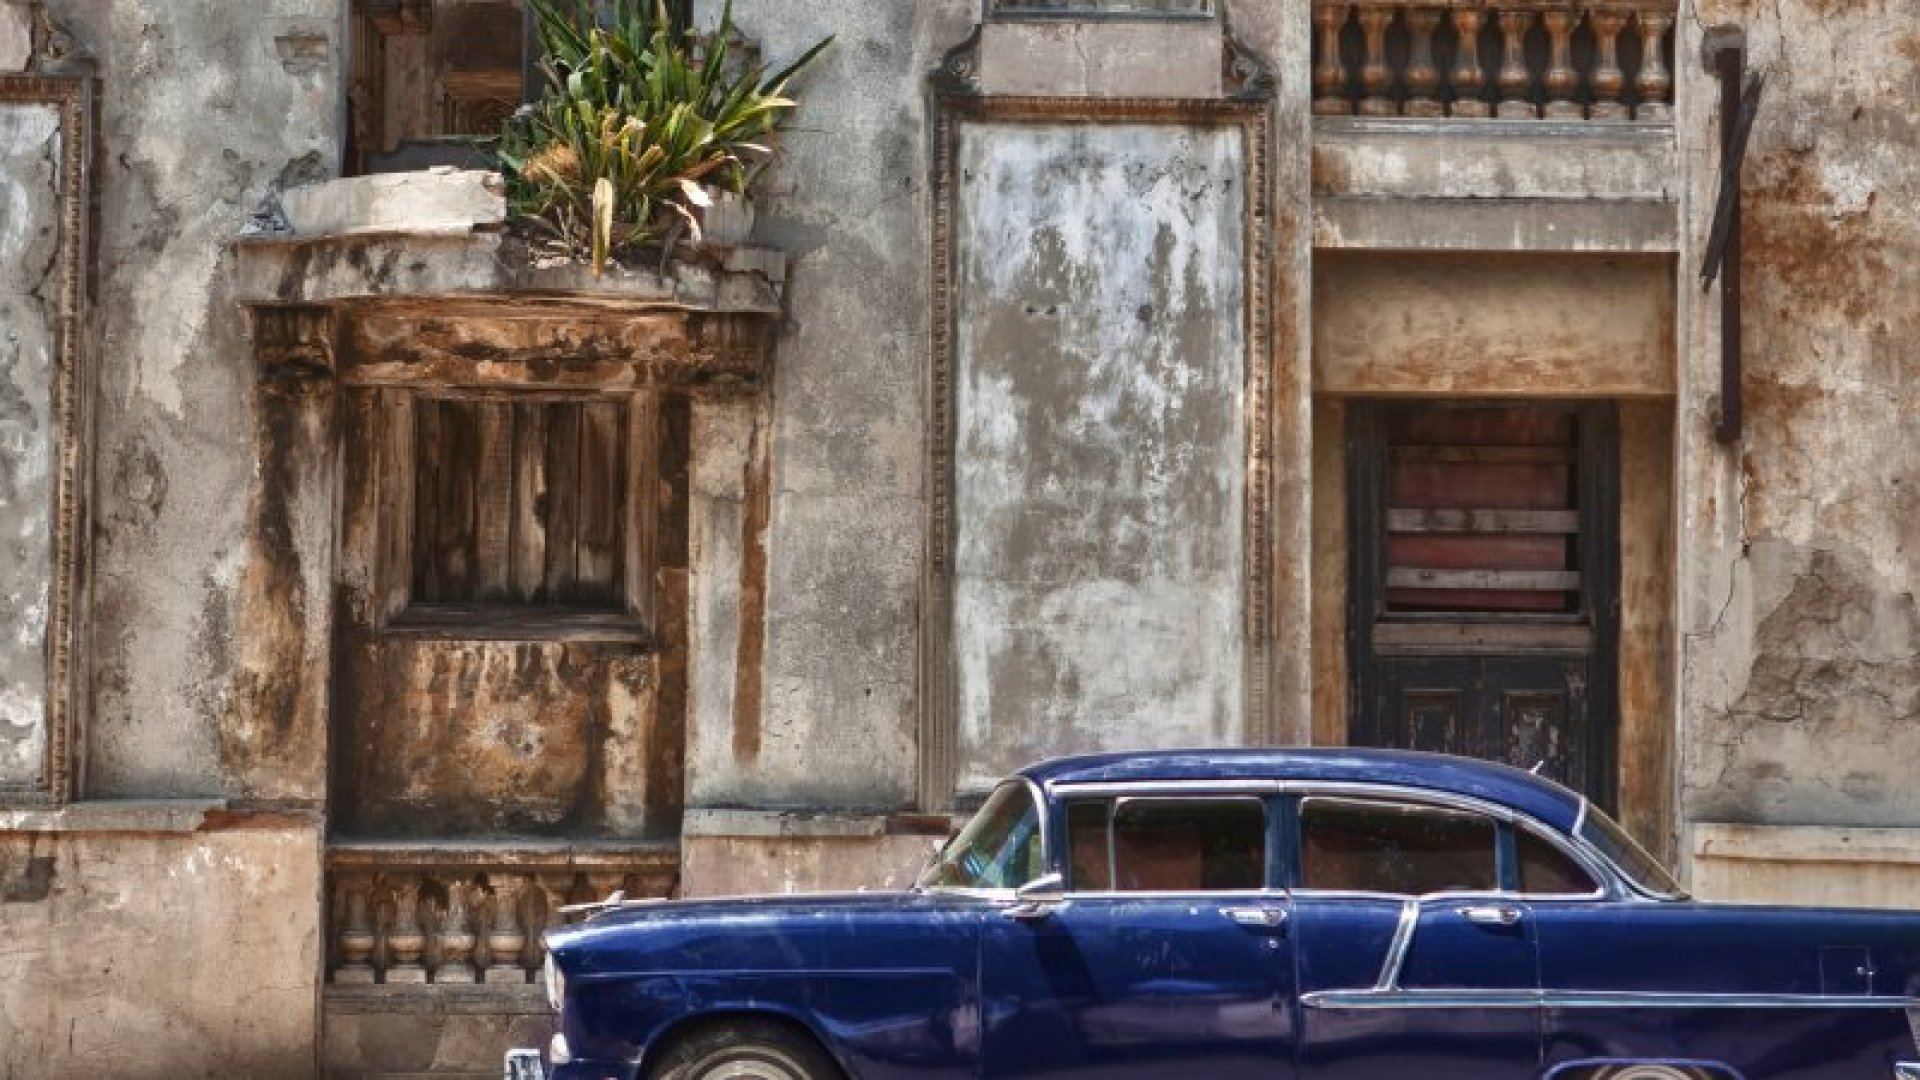 Obama Calls Cuba Open for Business, But Not Everyone's Happy About It